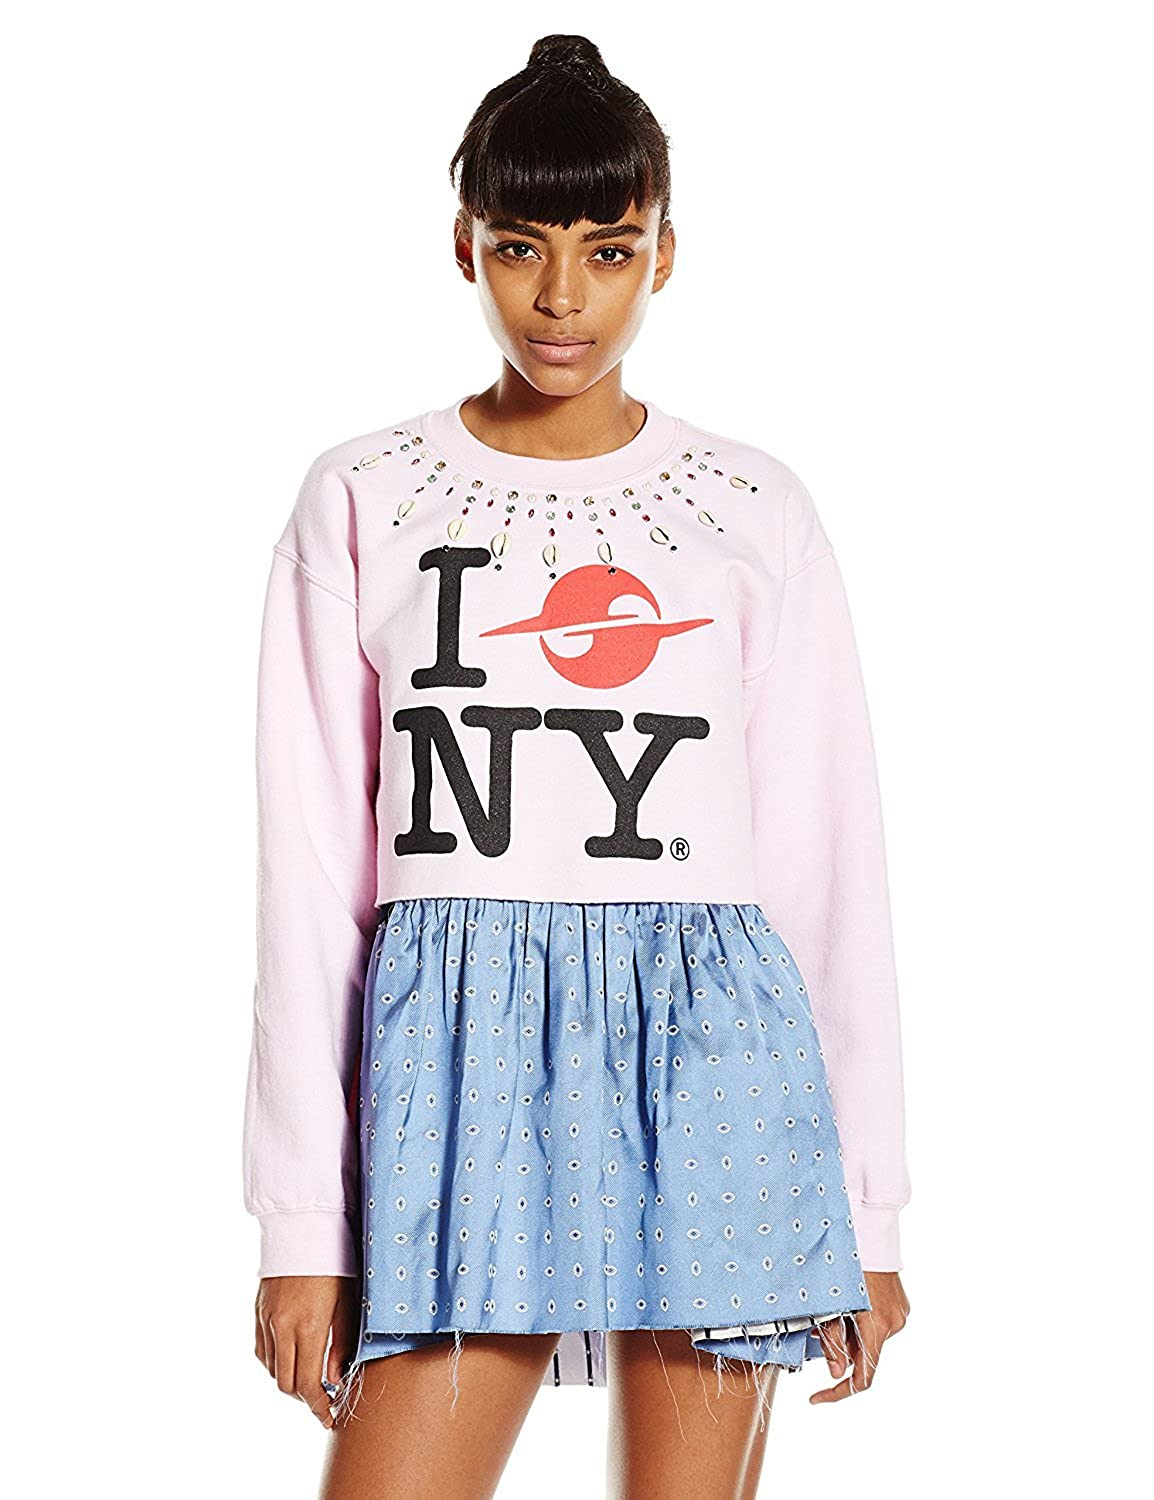 Gypsy Sport Women's Embellished Cropped Sweater Pink Large [並行輸入品] B075CCZV4T